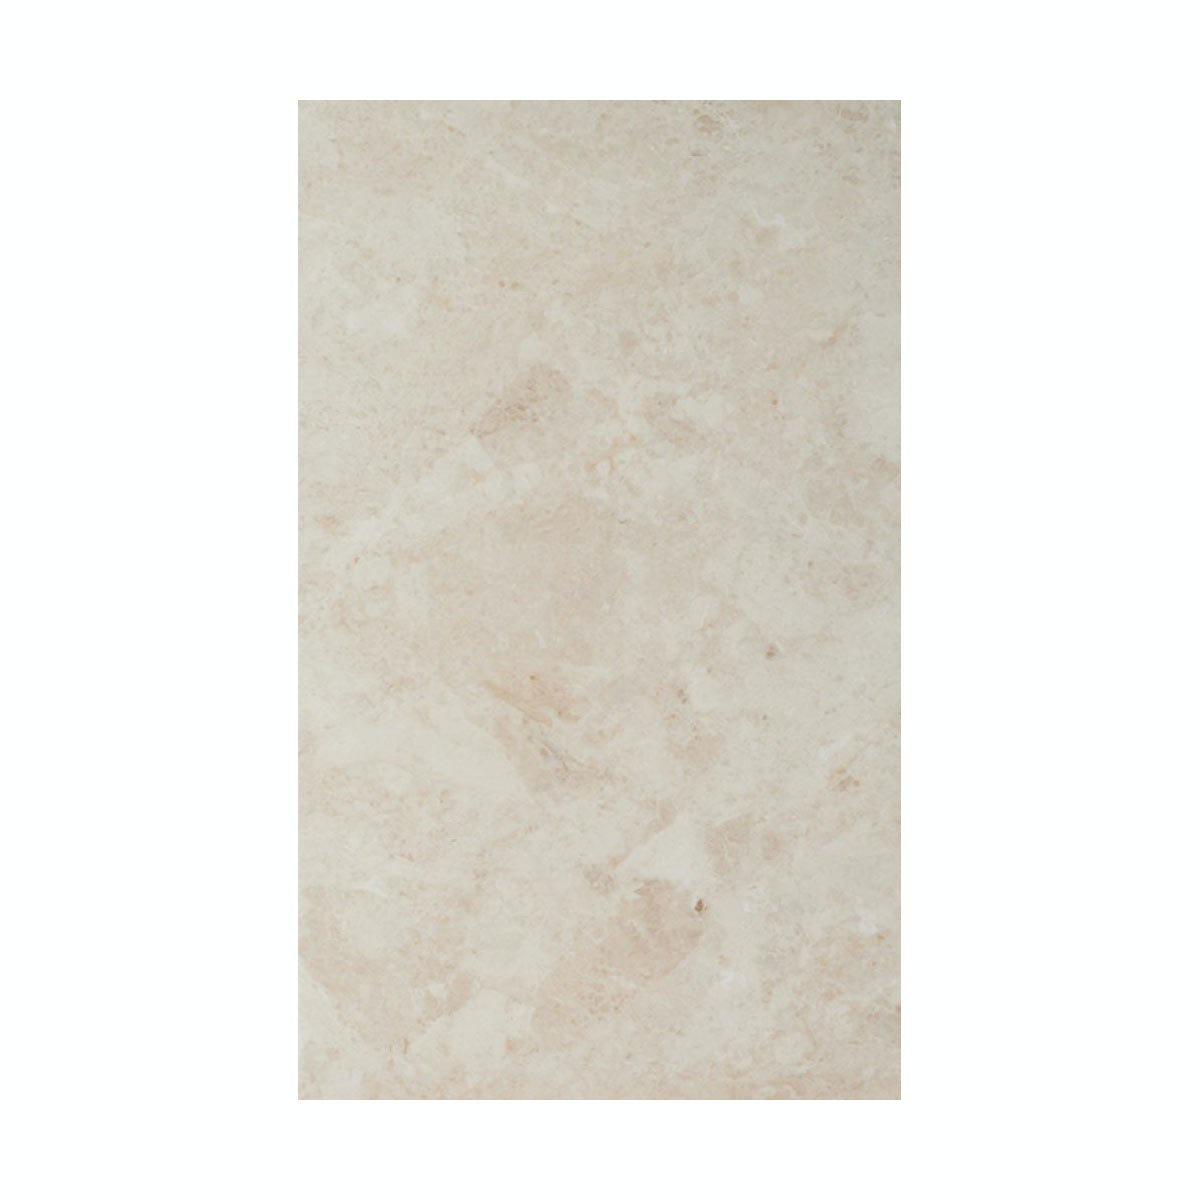 British Ceramic Tile Face Light Beige Matt Tile 298mm X